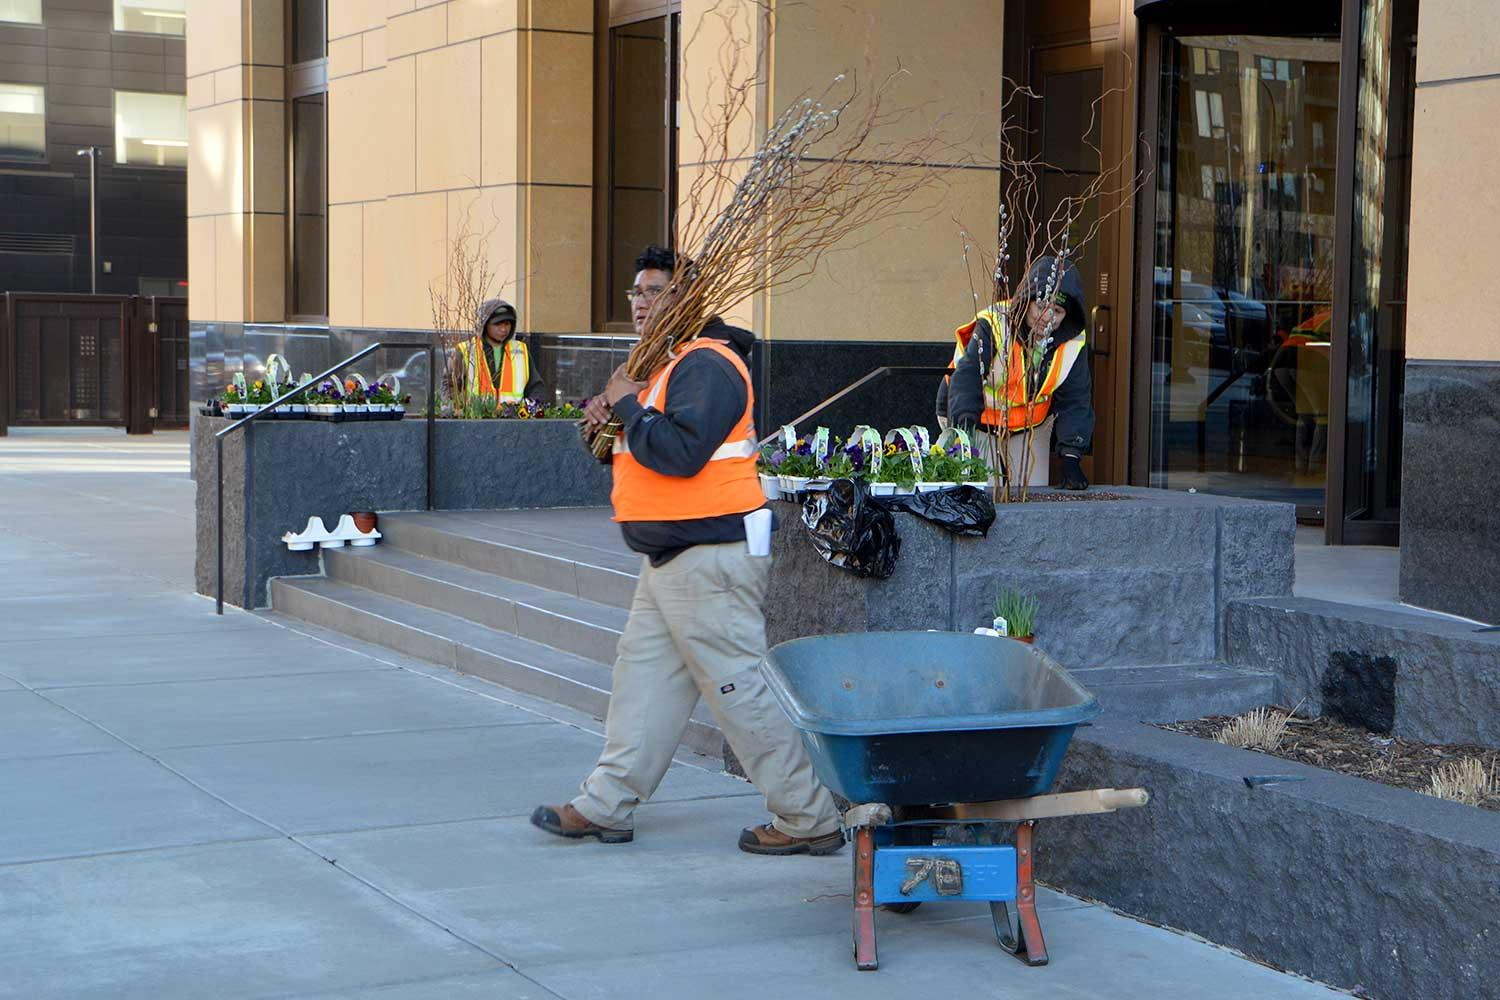 Assembling spring planter displays in downtown Minneapolis.